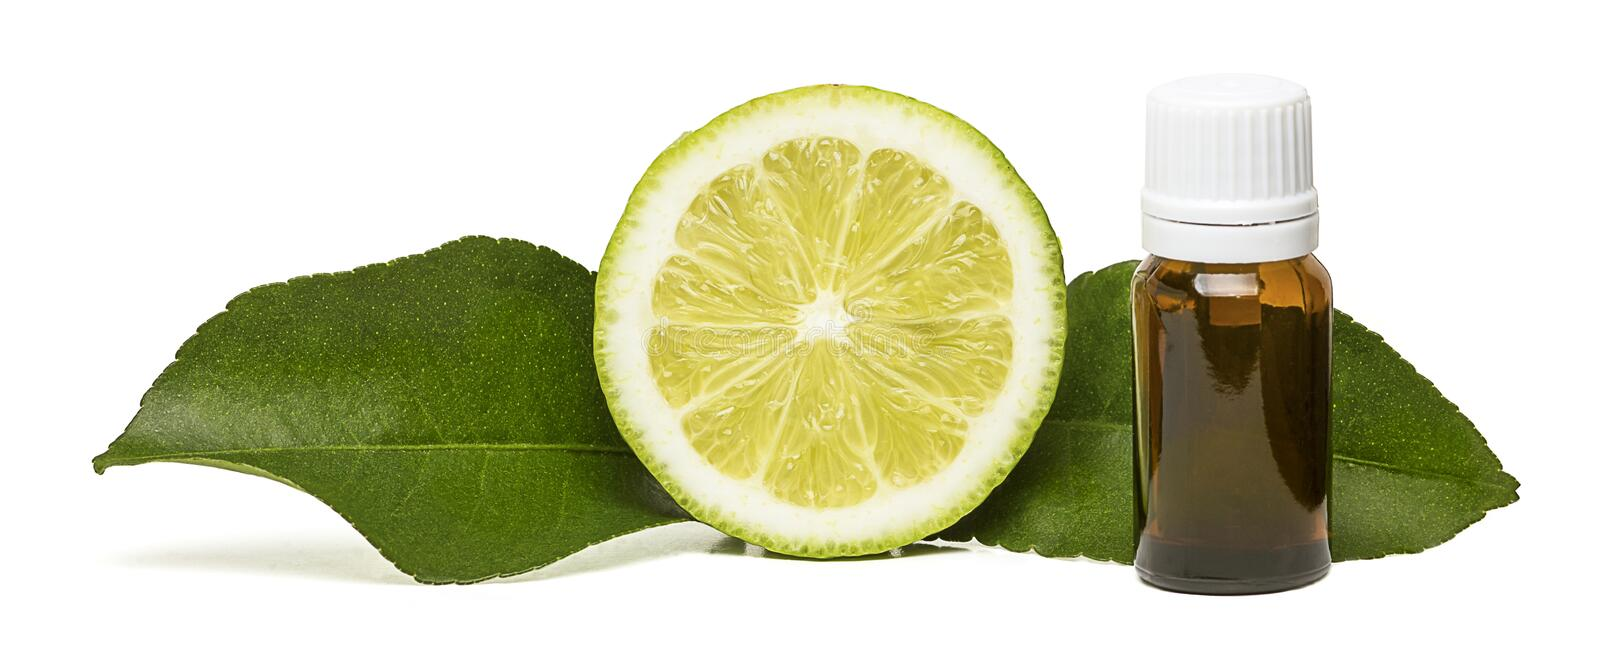 Lemon essential oil with two side leaves royalty free stock photography